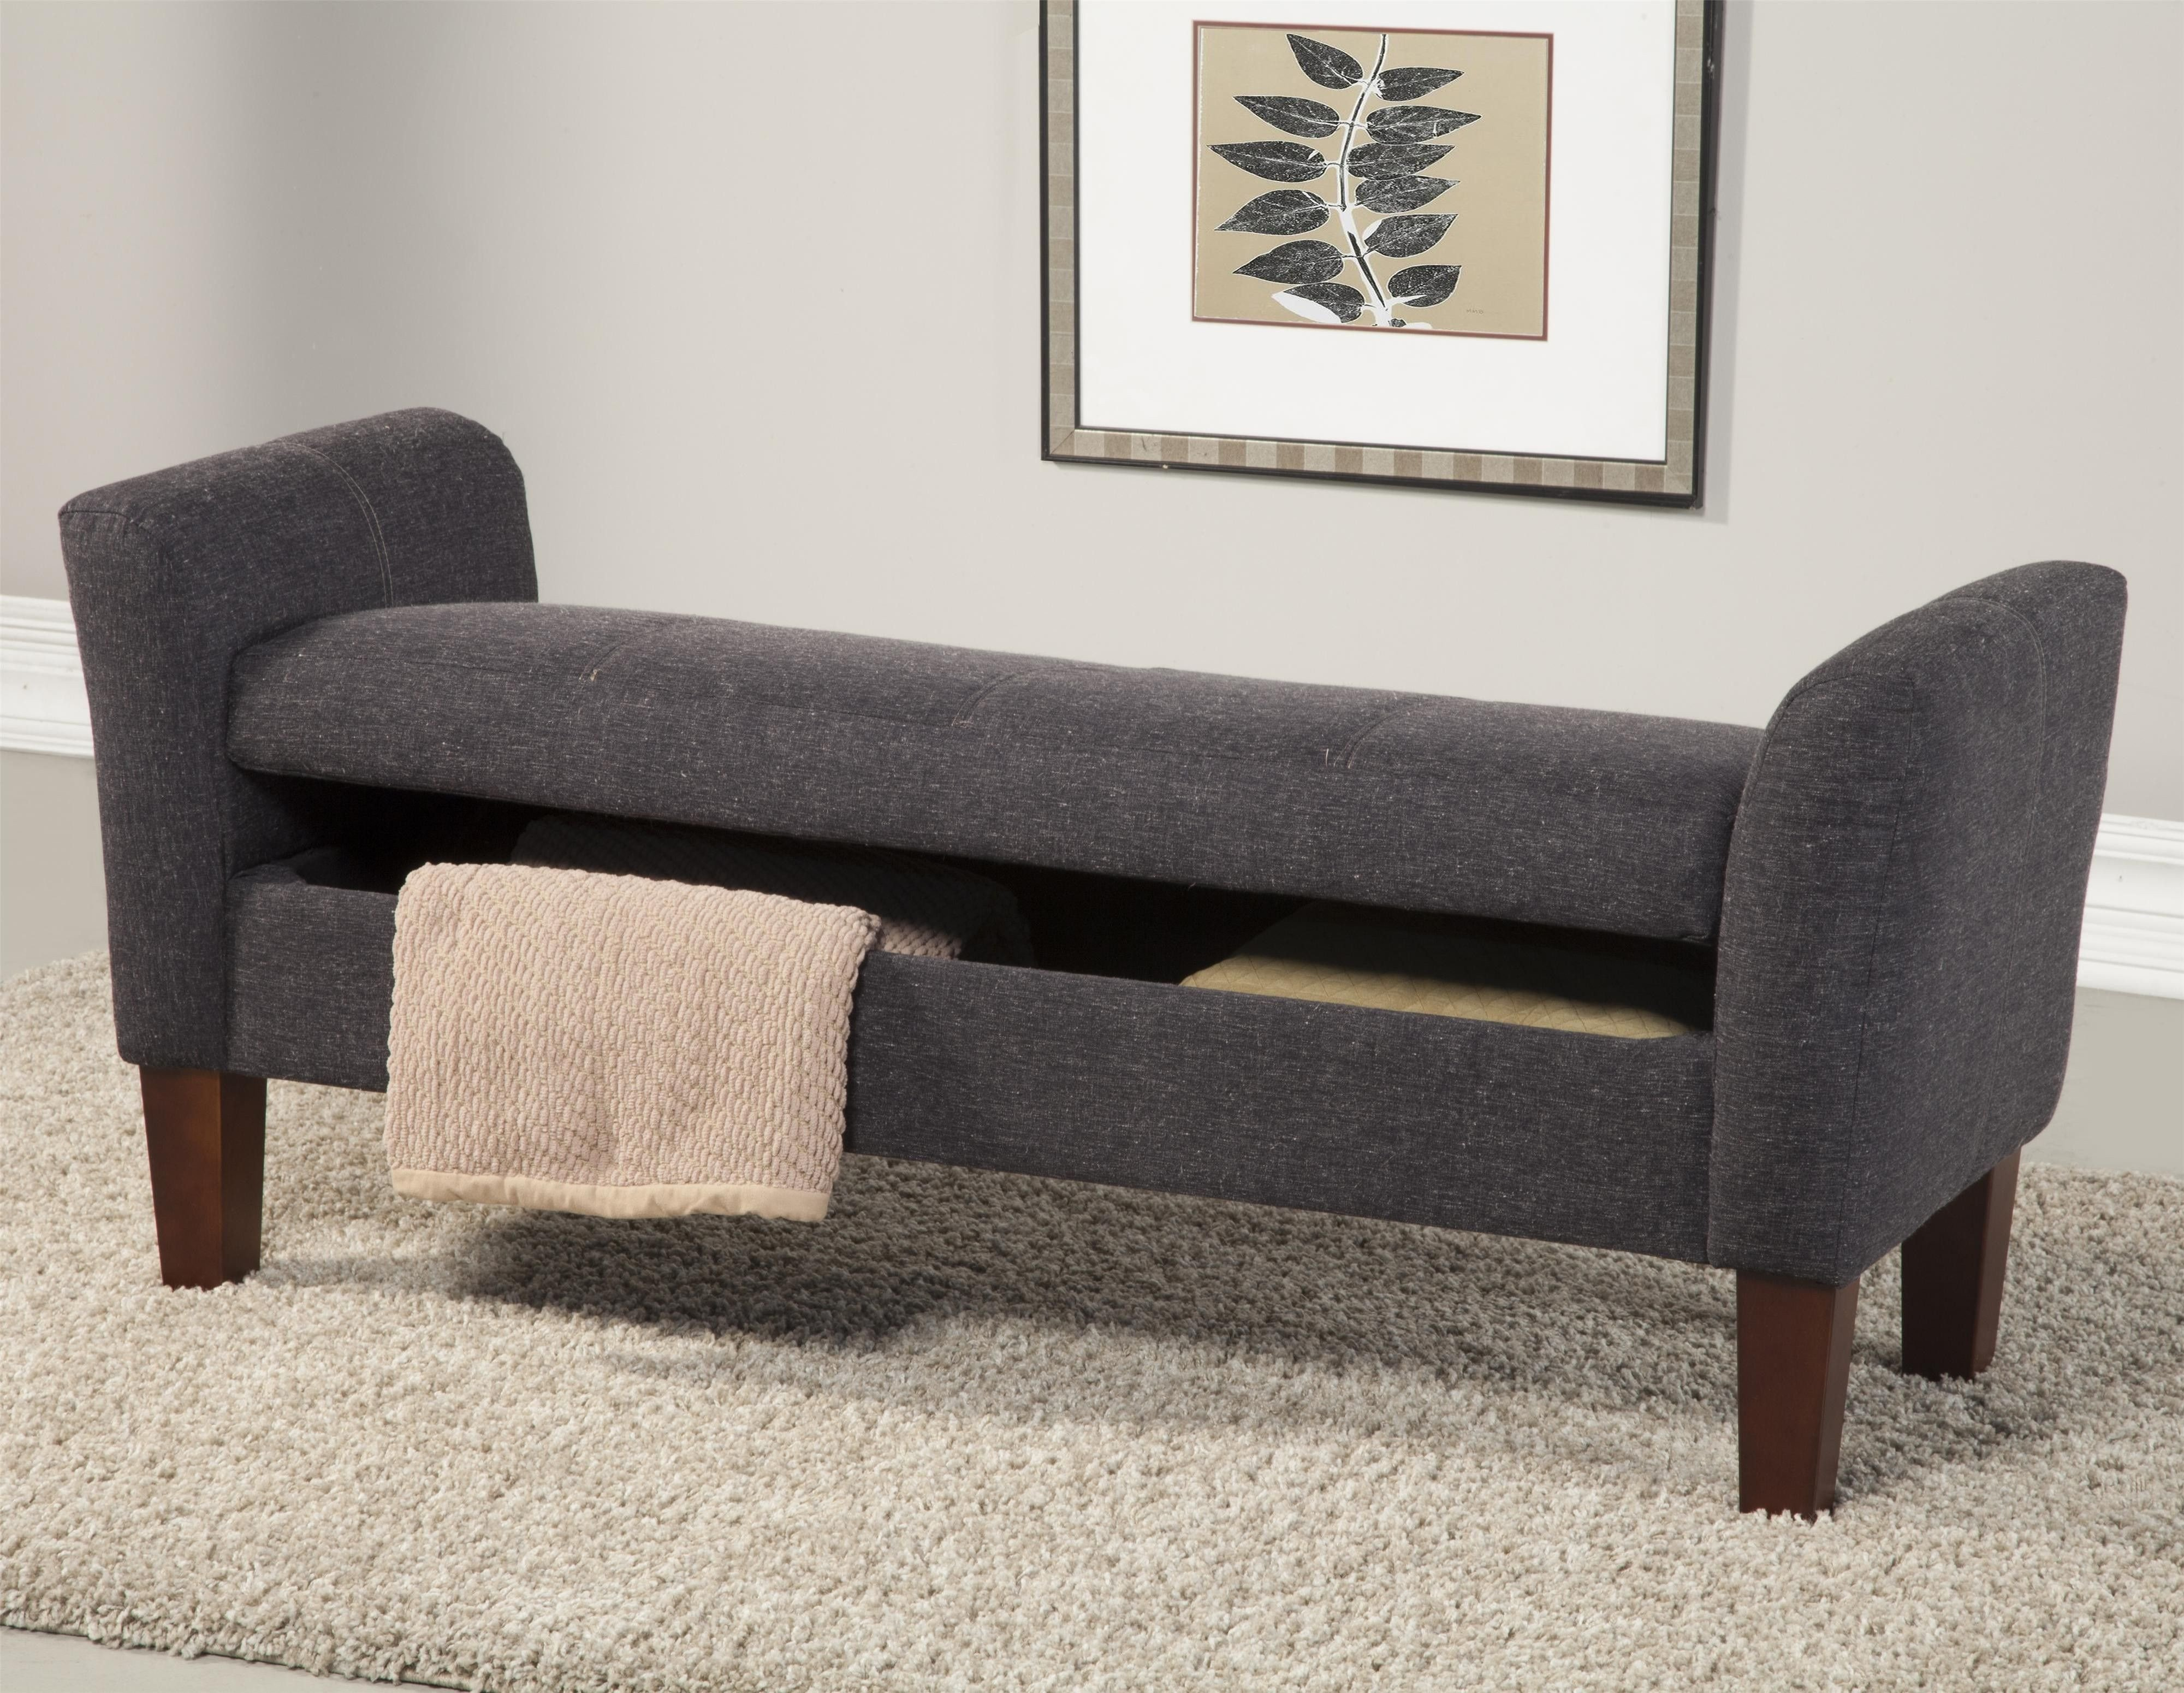 Fabric Bench for Bedroom Elegant Gray Canvas Fabric Bench with Armrest and Storage Also Brown